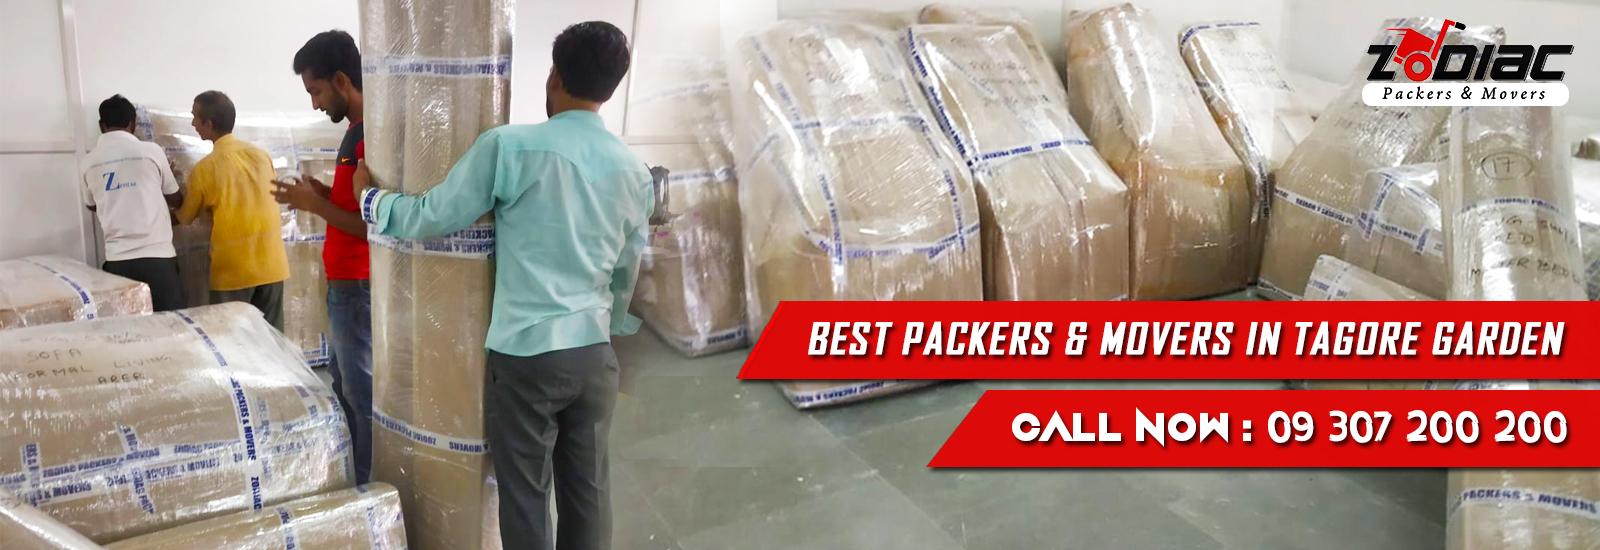 Packers and Movers in Tagore Garden